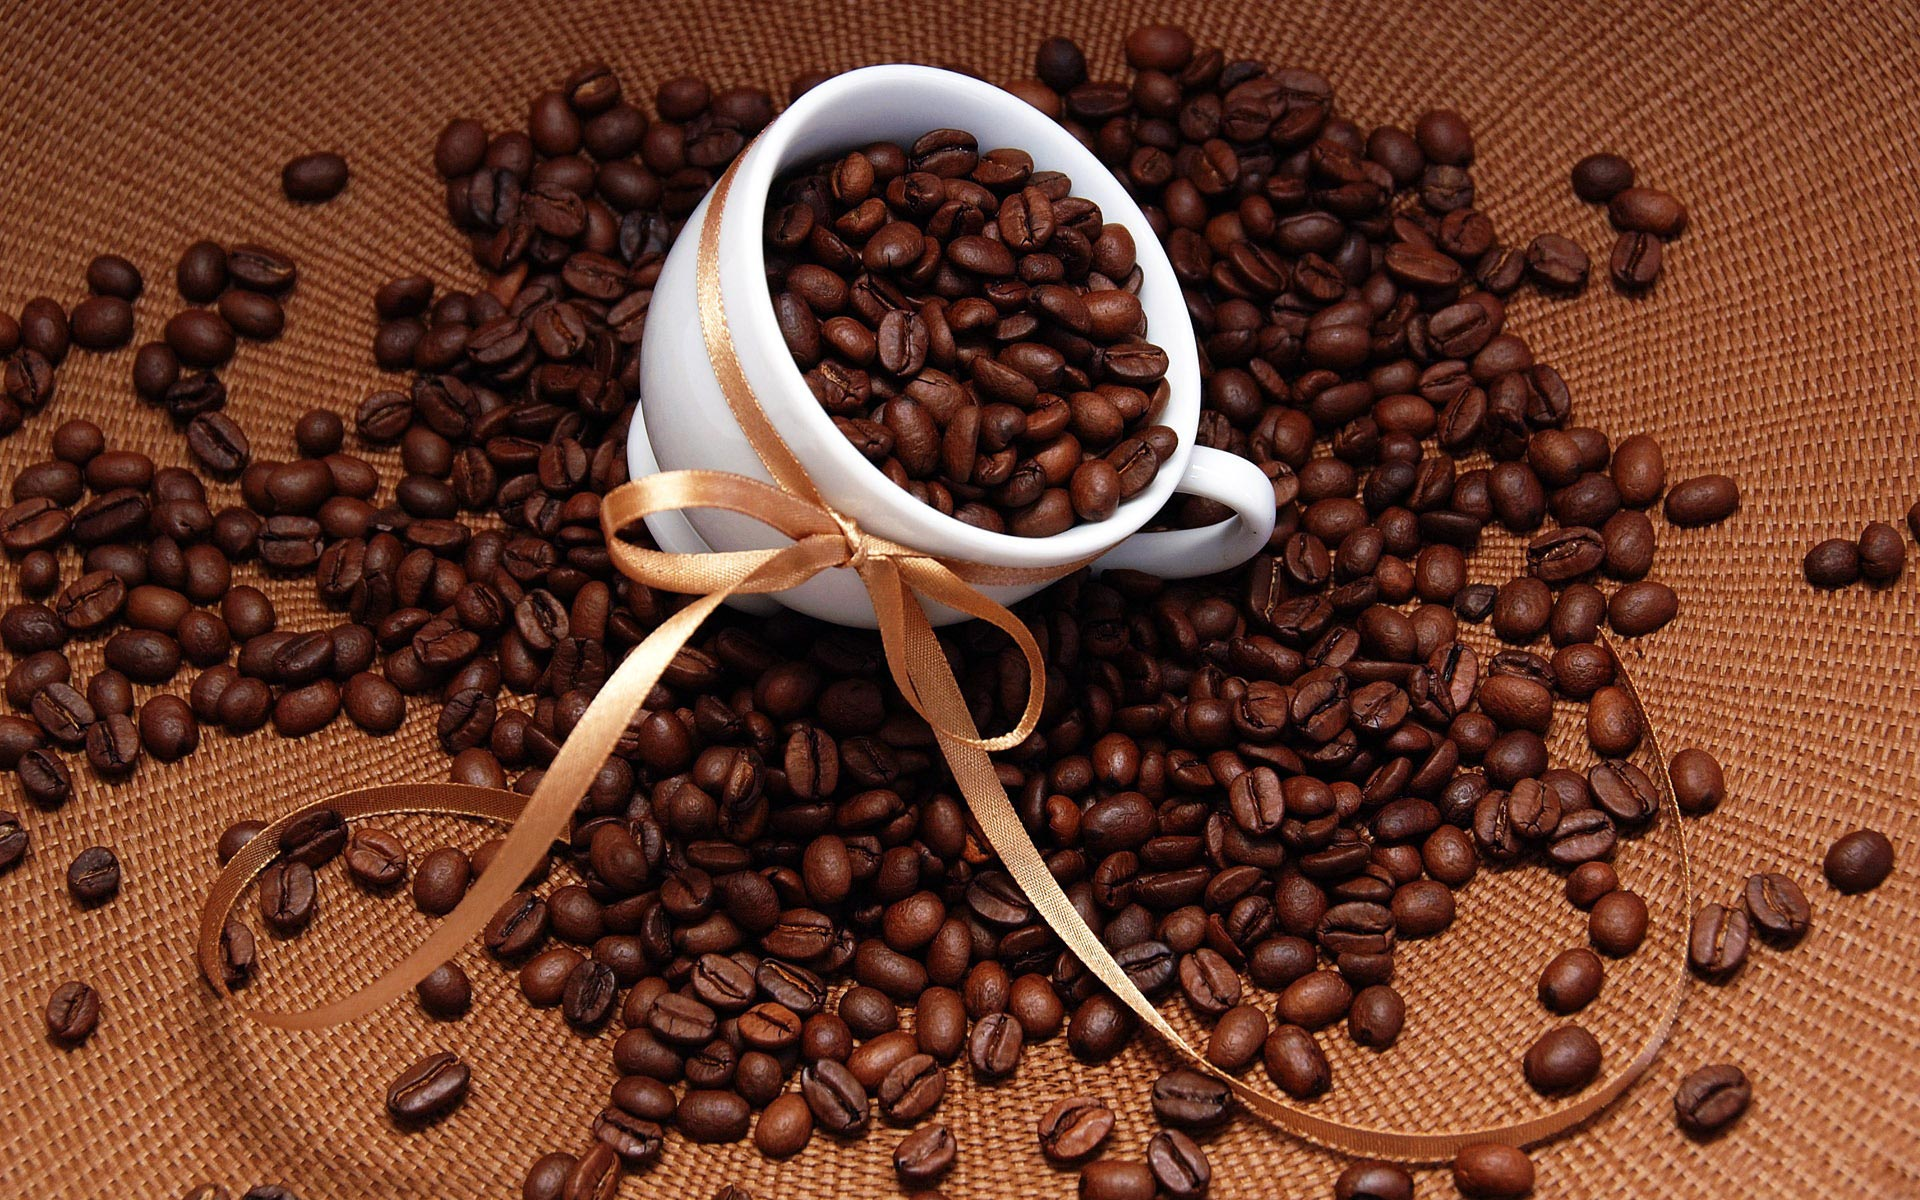 Arabica Prices Rise in March While Robusta Falls